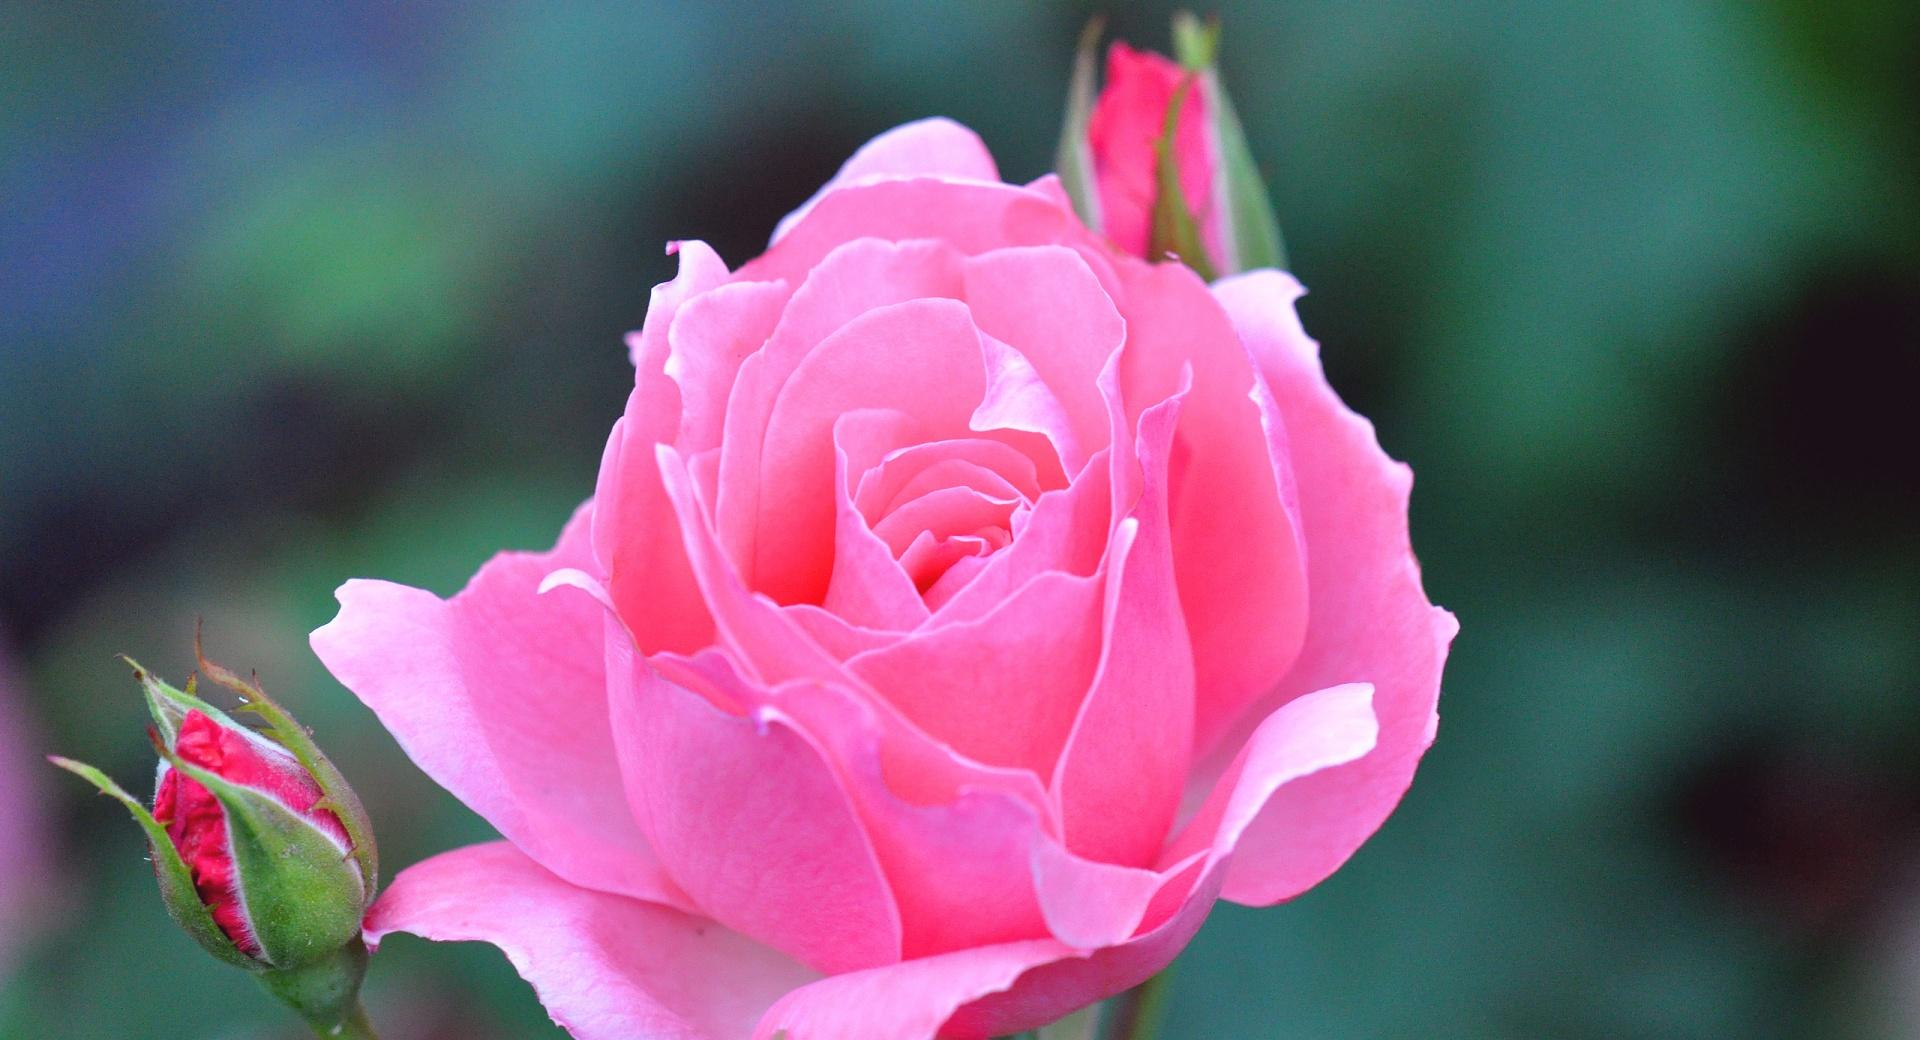 A Pink Rose And Two Buds at 640 x 1136 iPhone 5 size wallpapers HD quality